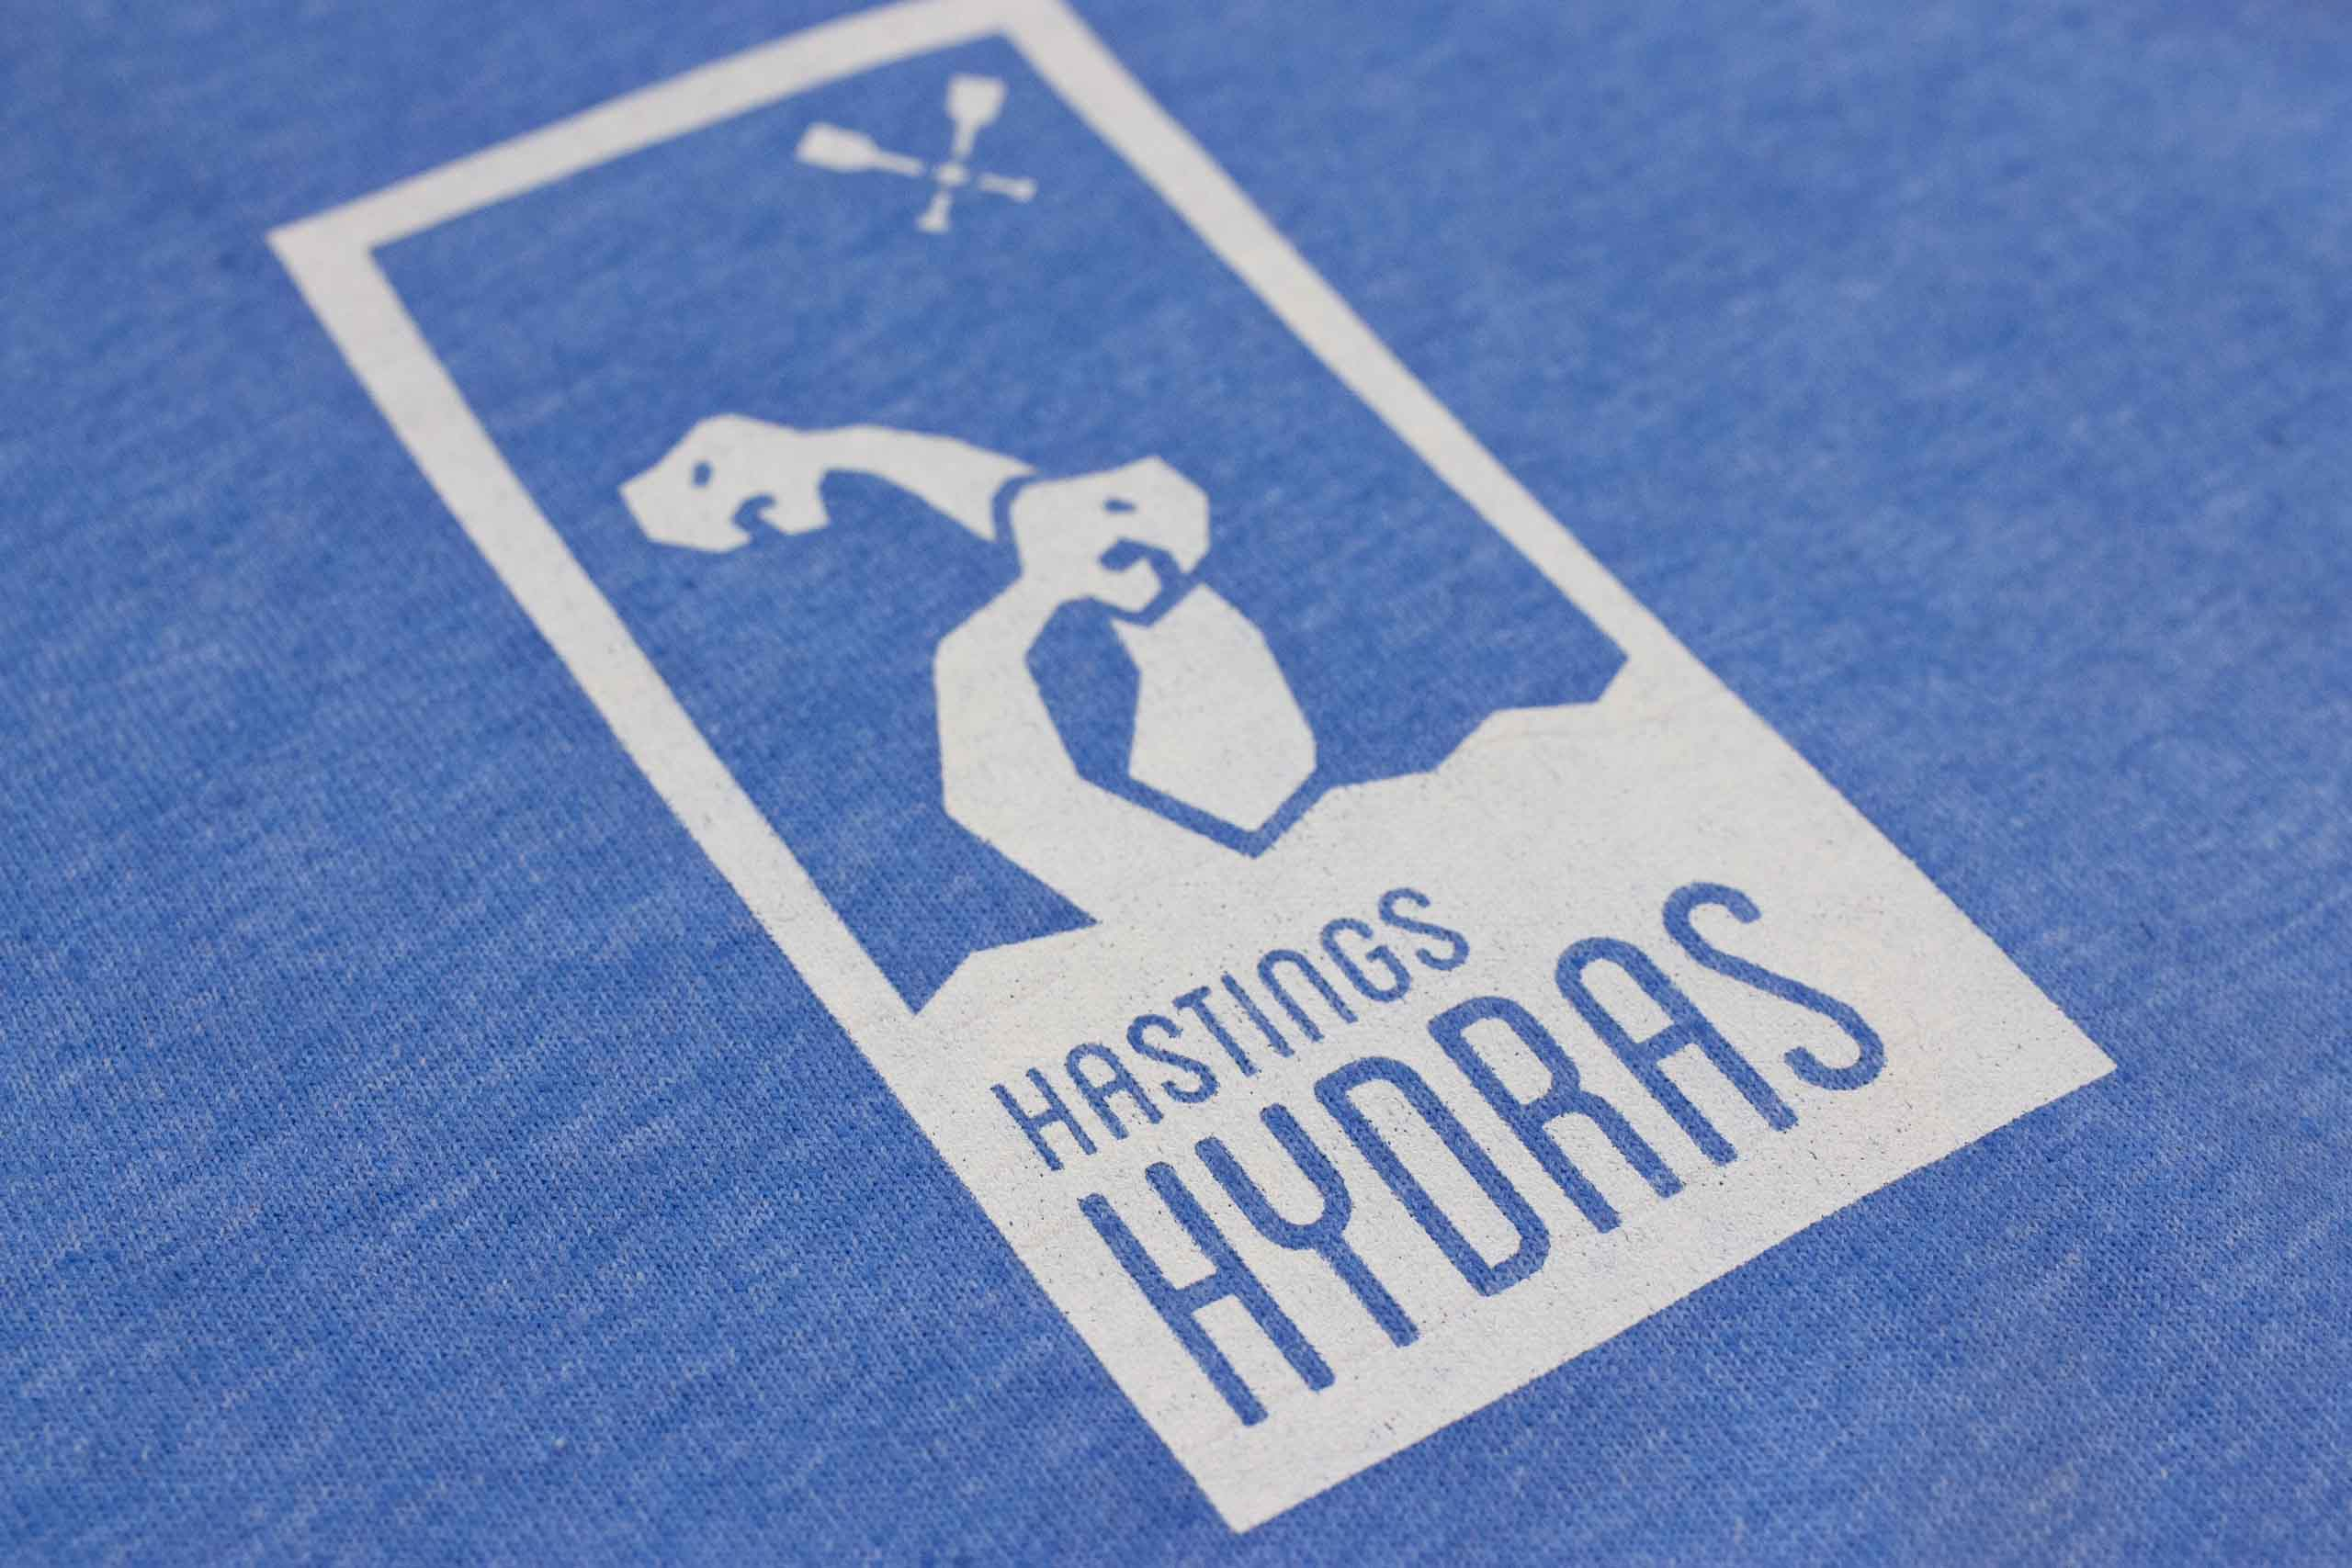 Macro Shot of Hasting Hydras logo on the shirt showing printed details — by Yagnyuk.